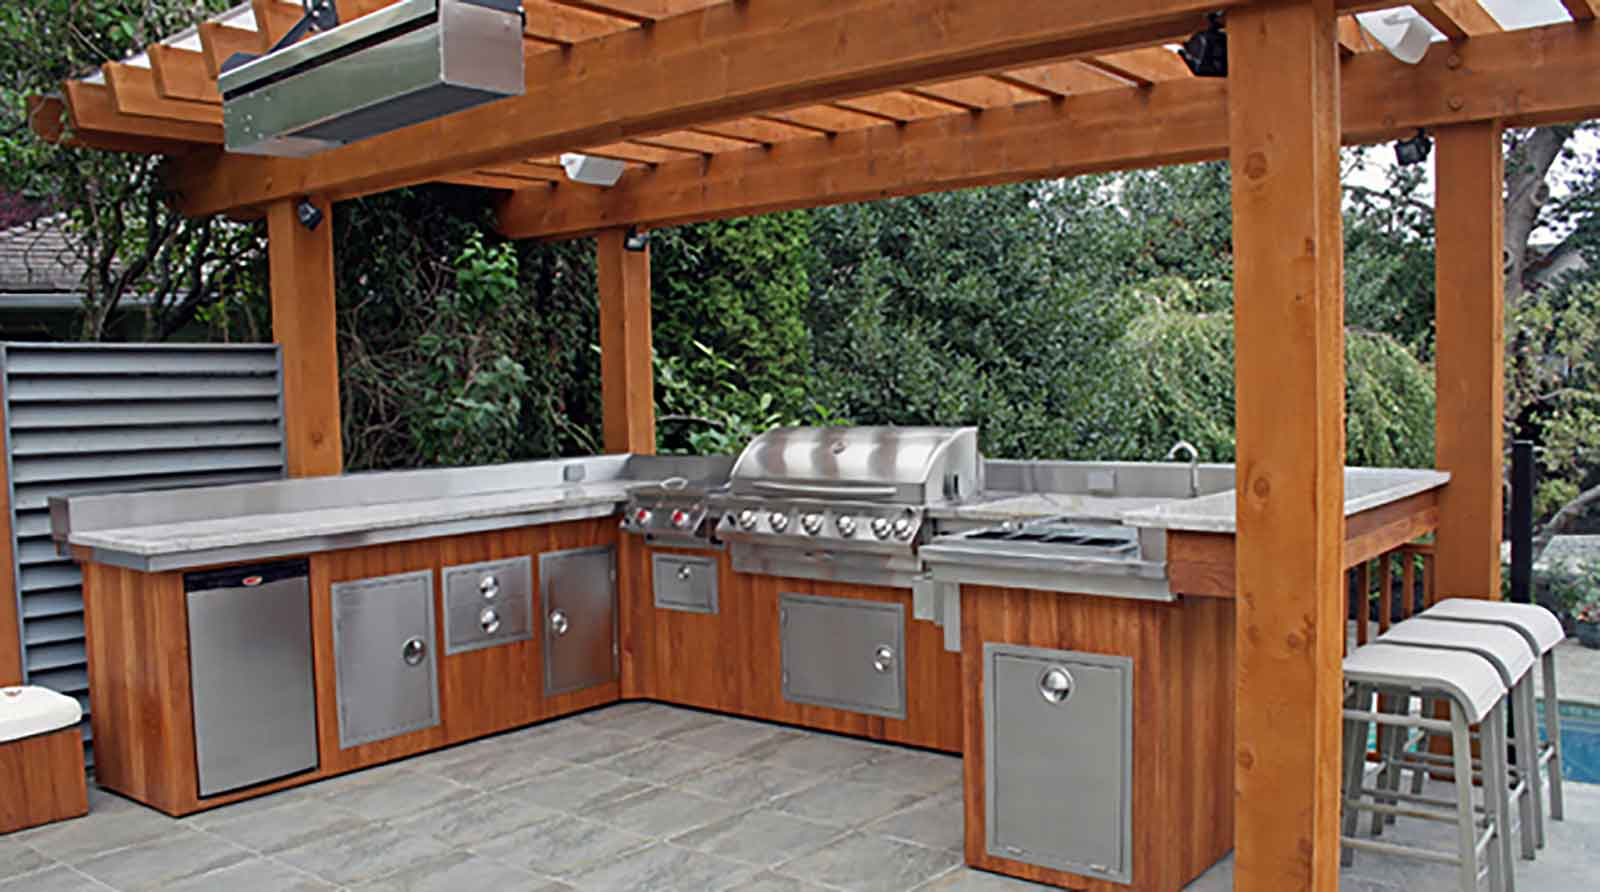 Custom designed outdoor kitchens azuro concepts for Backyard kitchen designs photos